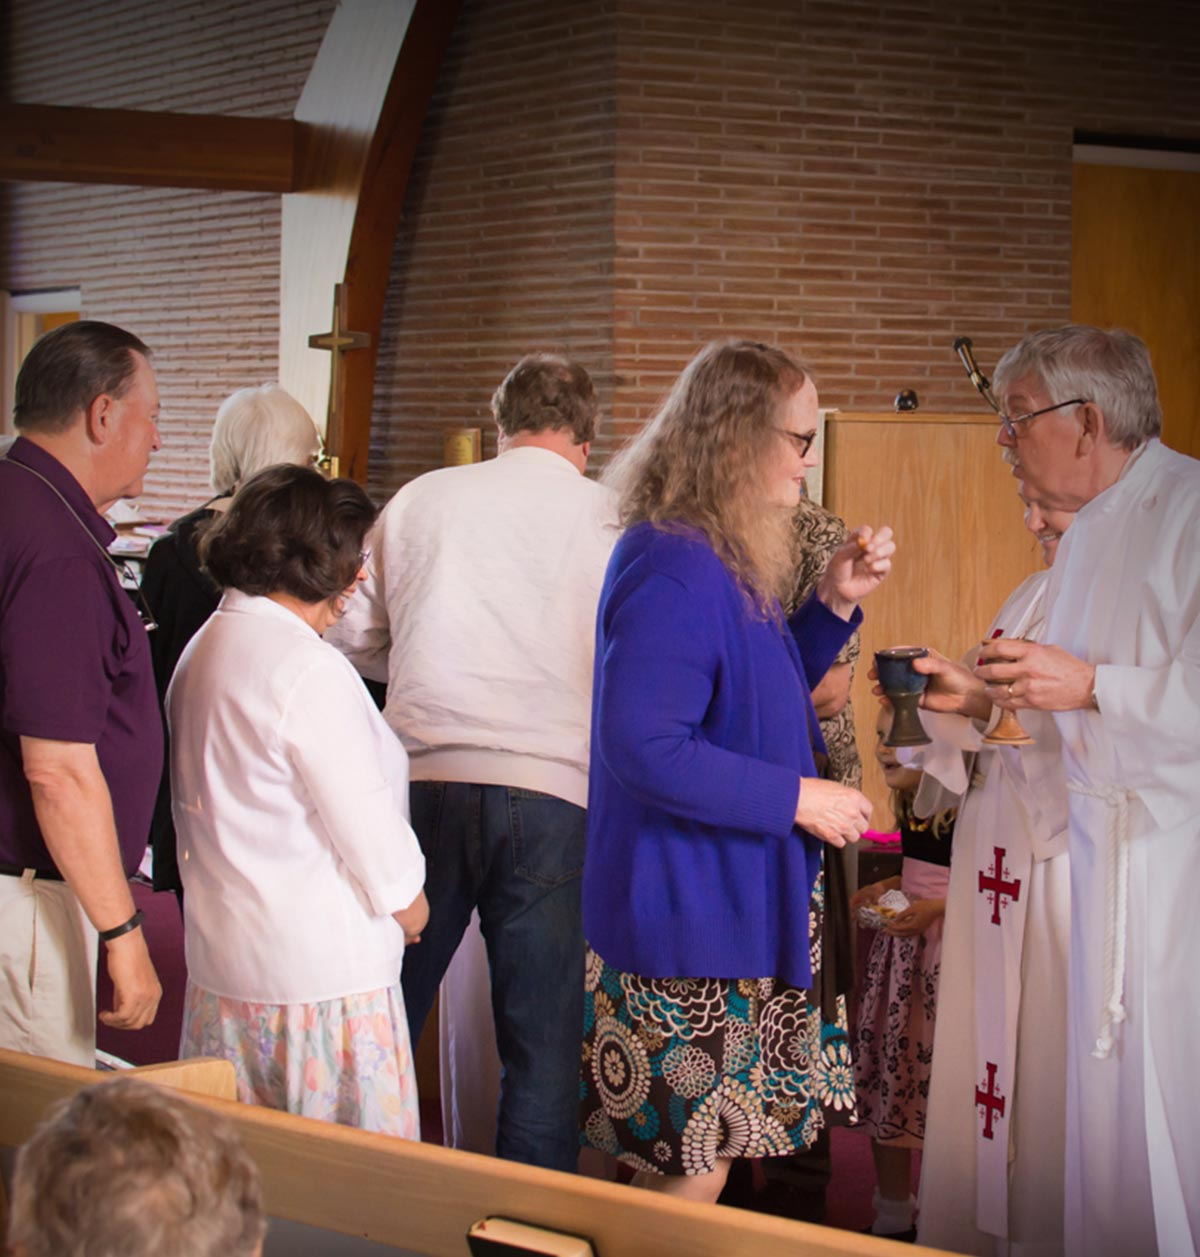 The congregation participating in communion at St. John's Lutheran Church in Bellingham, WA